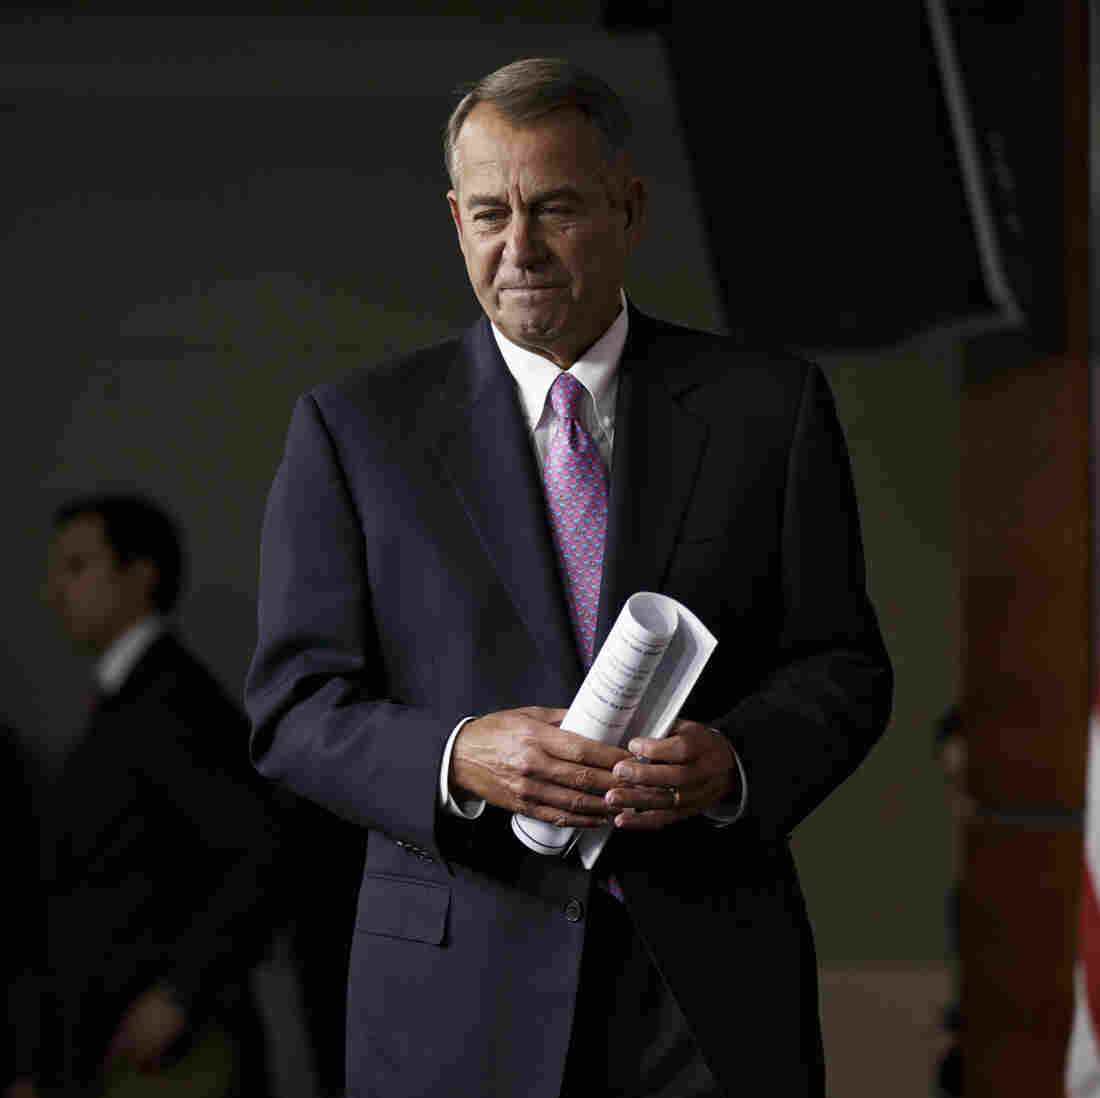 Boehner Agrees To Bring Clean Debt Ceiling Bill To The Floor